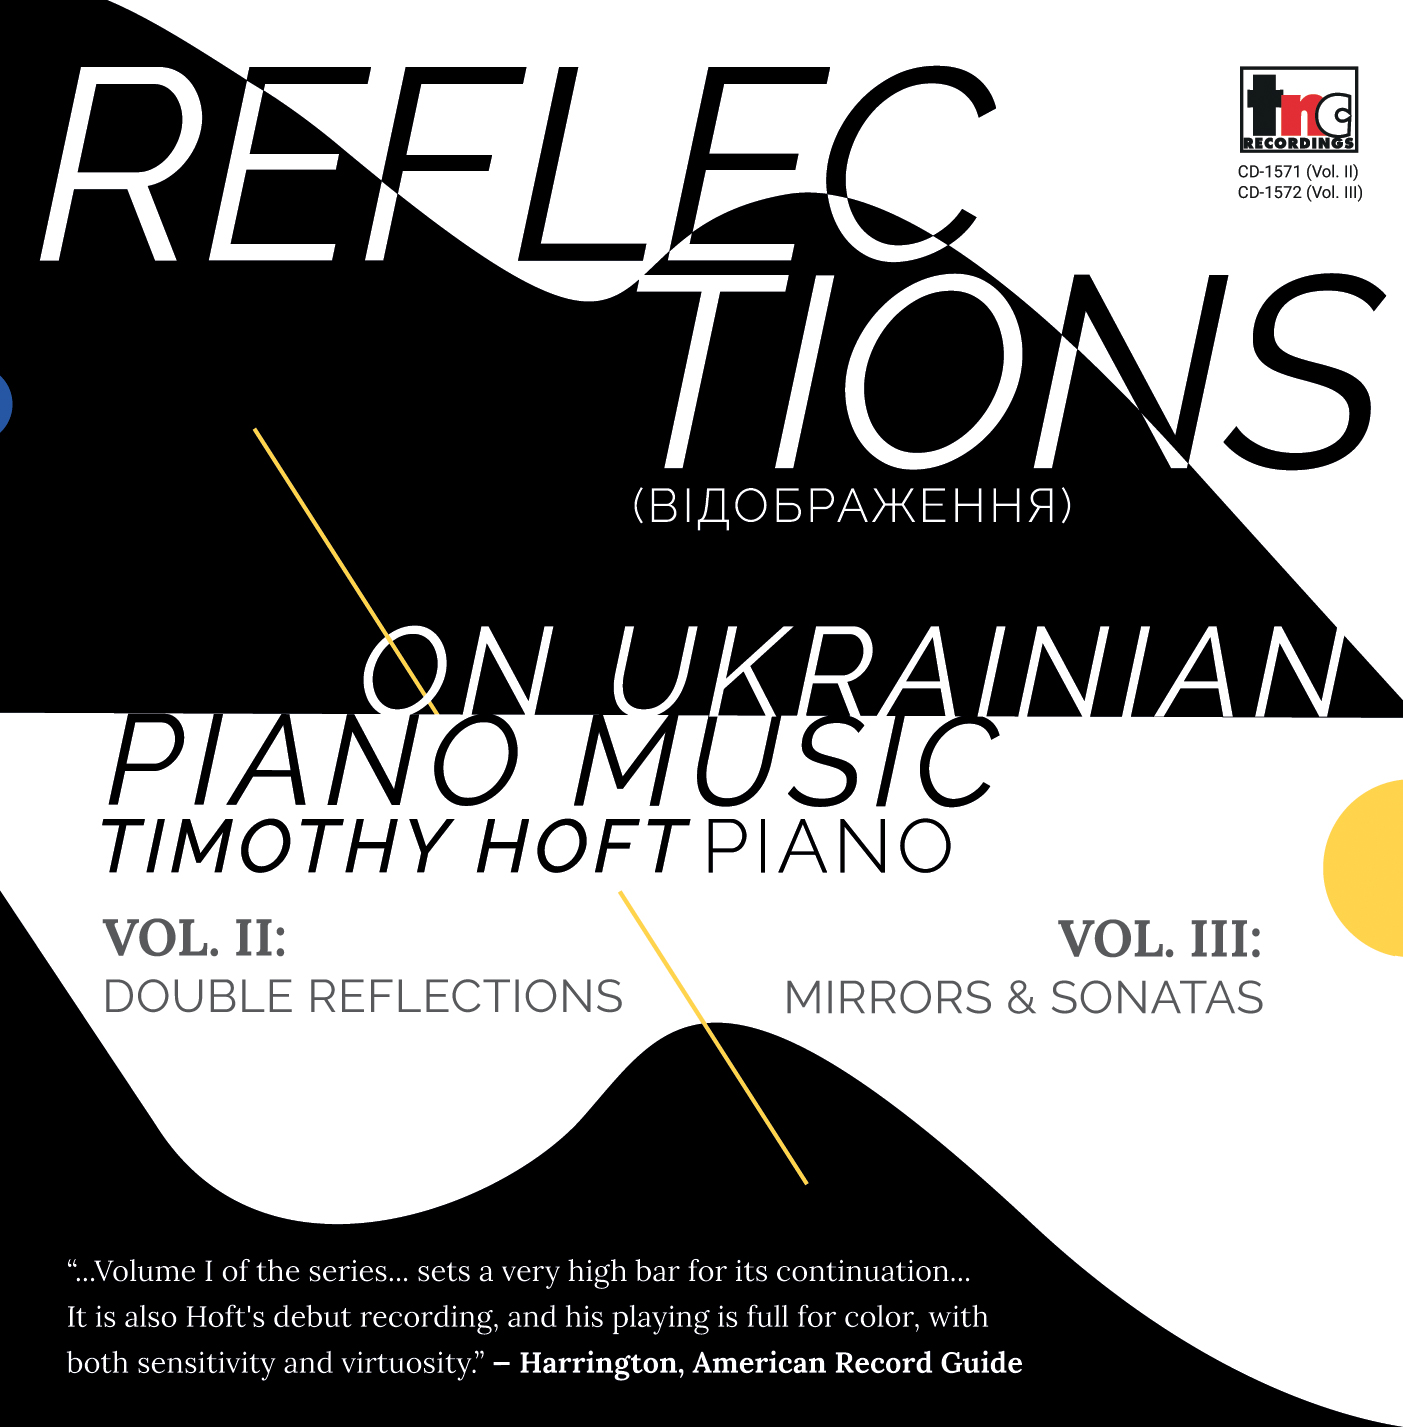 Reflections on Ukranian Piano Music Vol. II & III, Double Reflections/Mirrors and Sonatas, Timothy Hoft (Piano) (TNC CD 1571+1572)